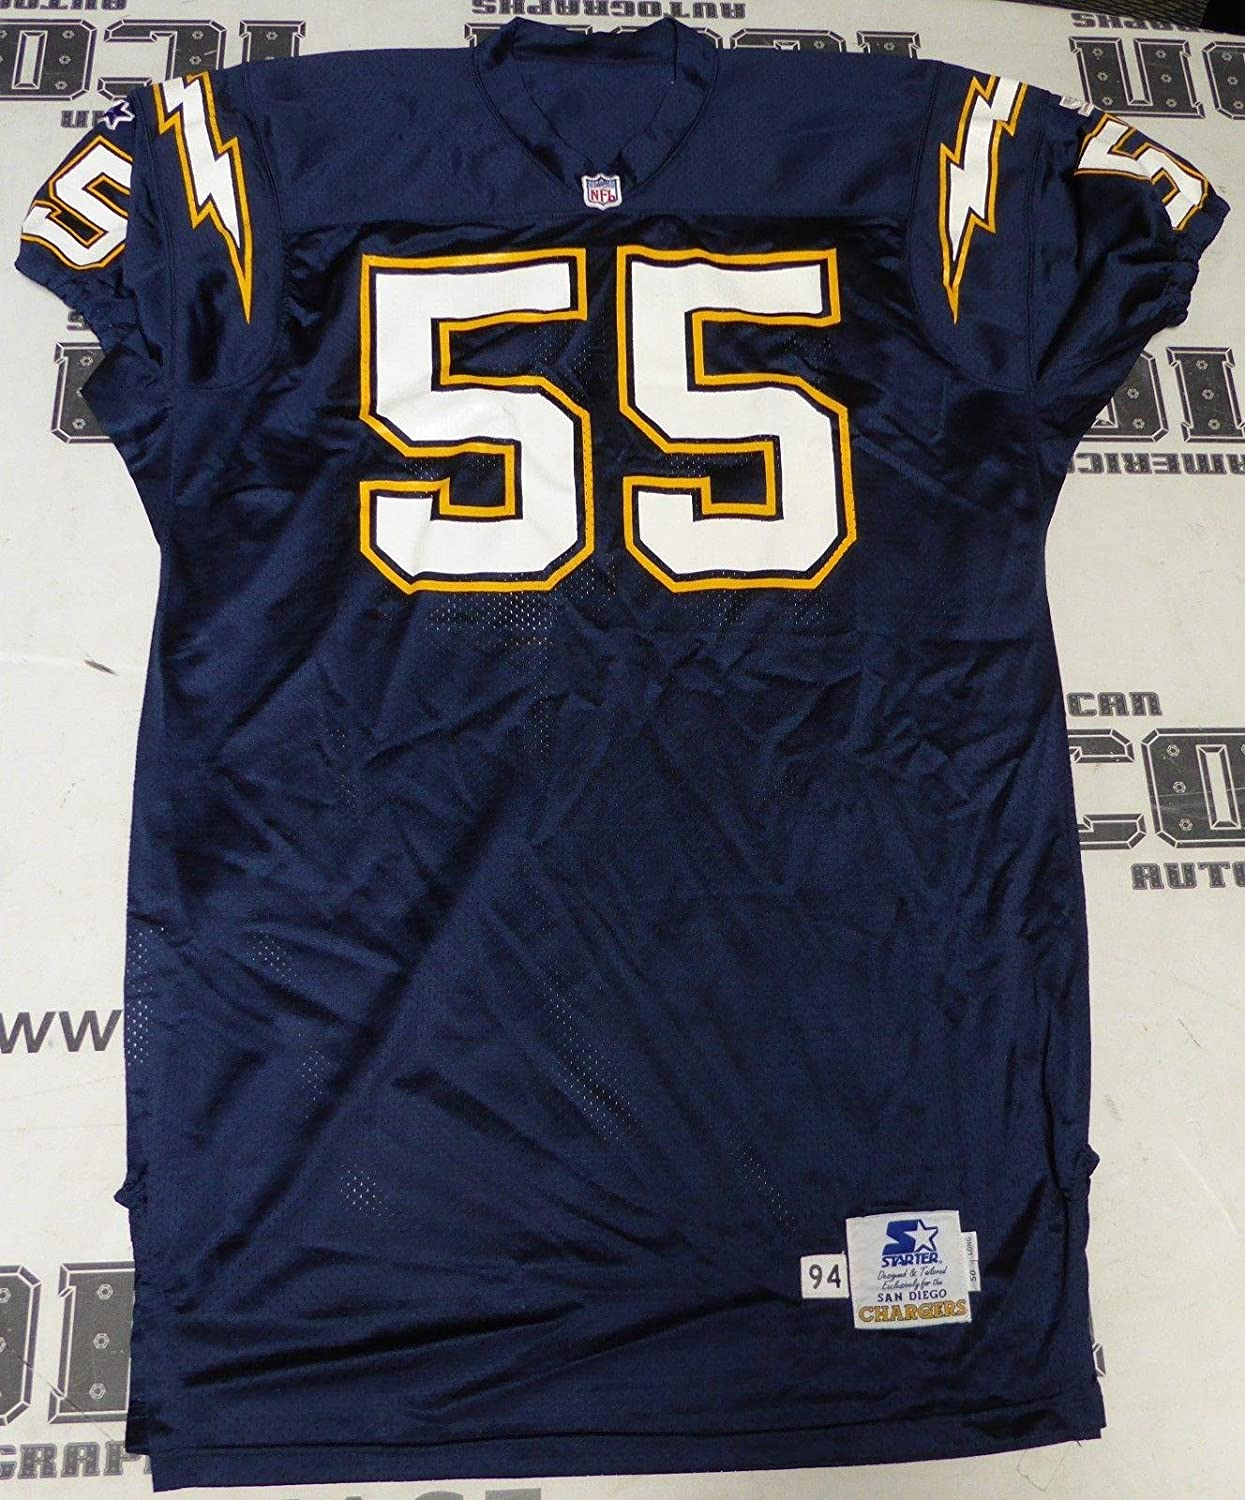 ... Nike Junior Seau Elite Jersey at Chargers Shop Amazon.com Junior JR Seau  Game Issued On Field 1994 Chargers Football Starter Jersey 55 Mens NFL ... a40b0839f